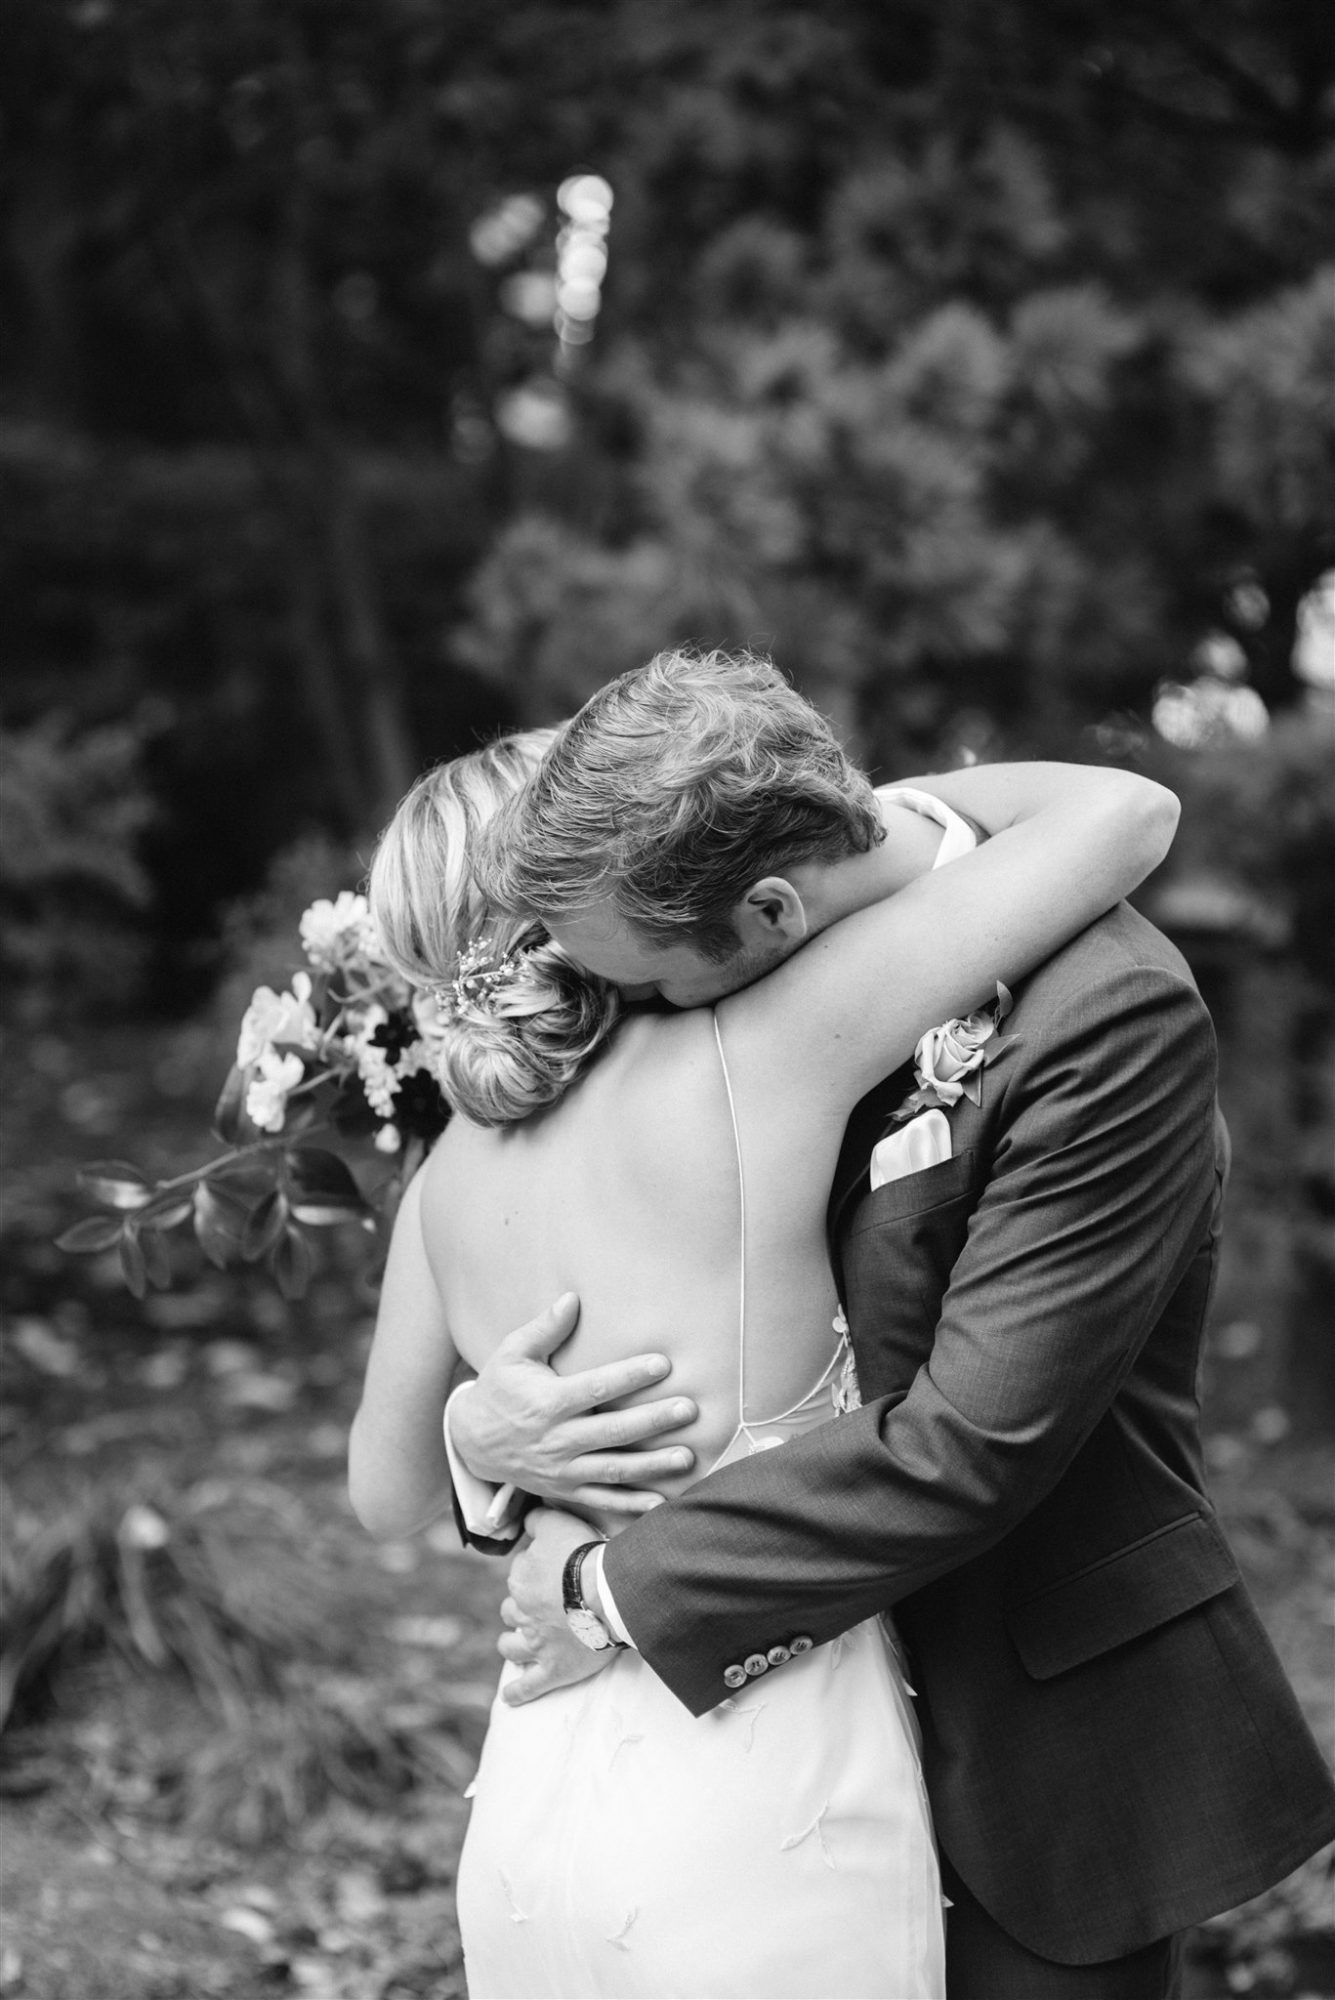 black and white outdoor photo brianna and drew hugging